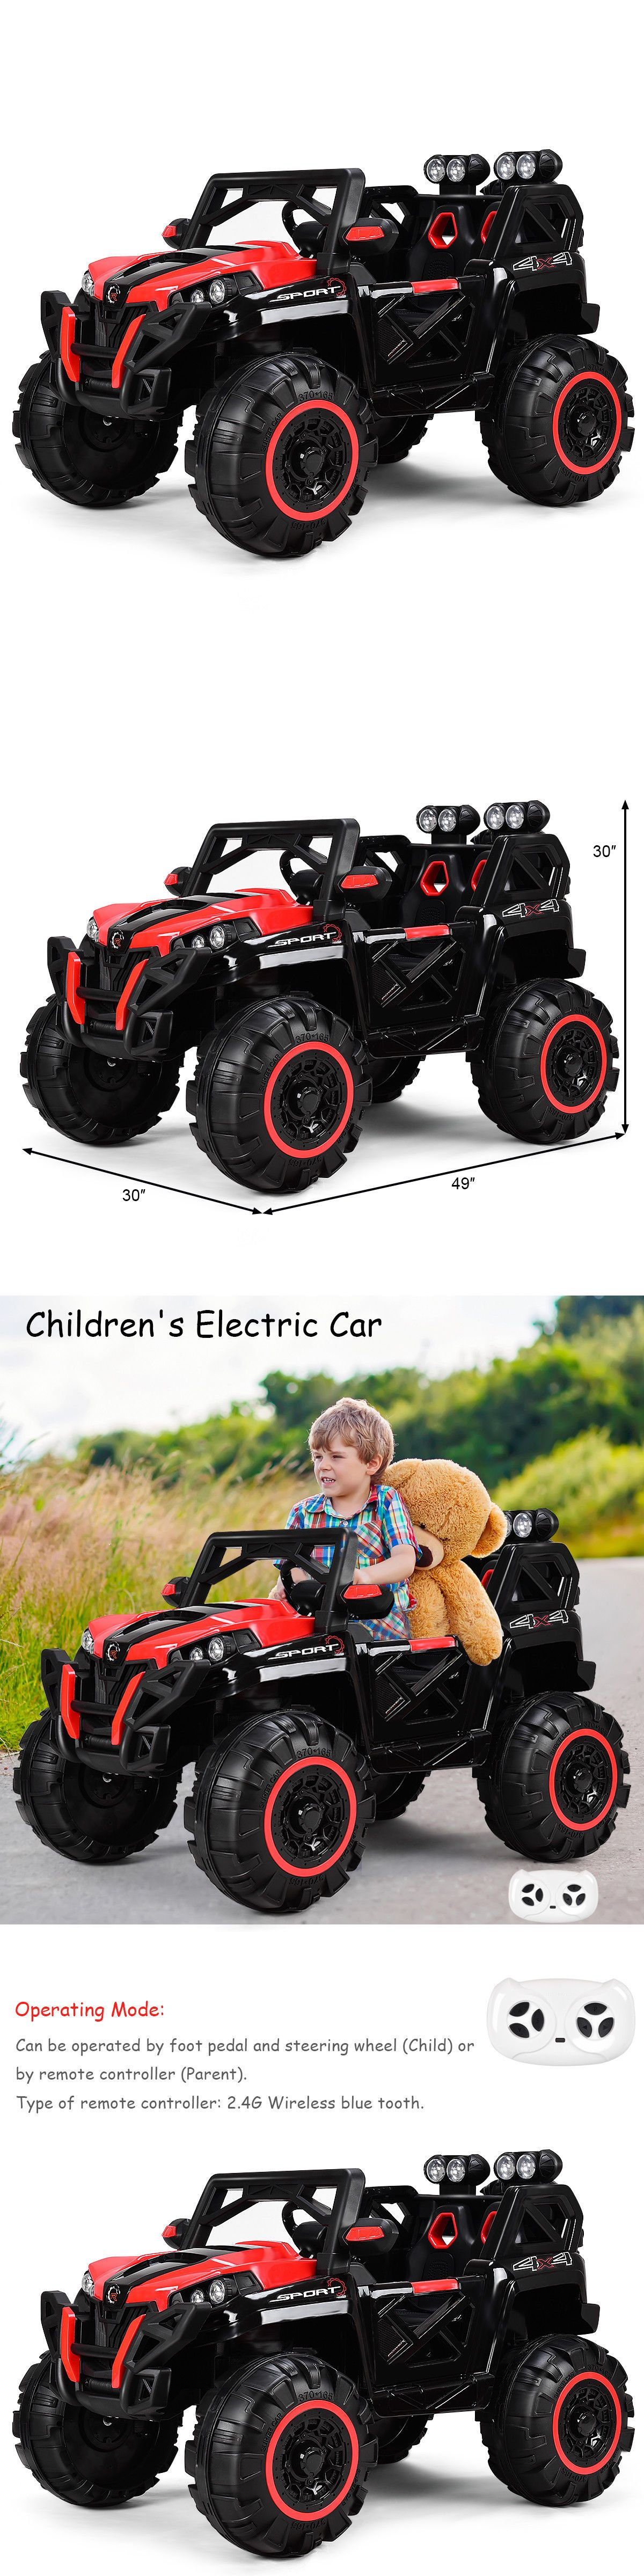 Battery Operated 19072: 12V Kids Ride On Racing Off Road